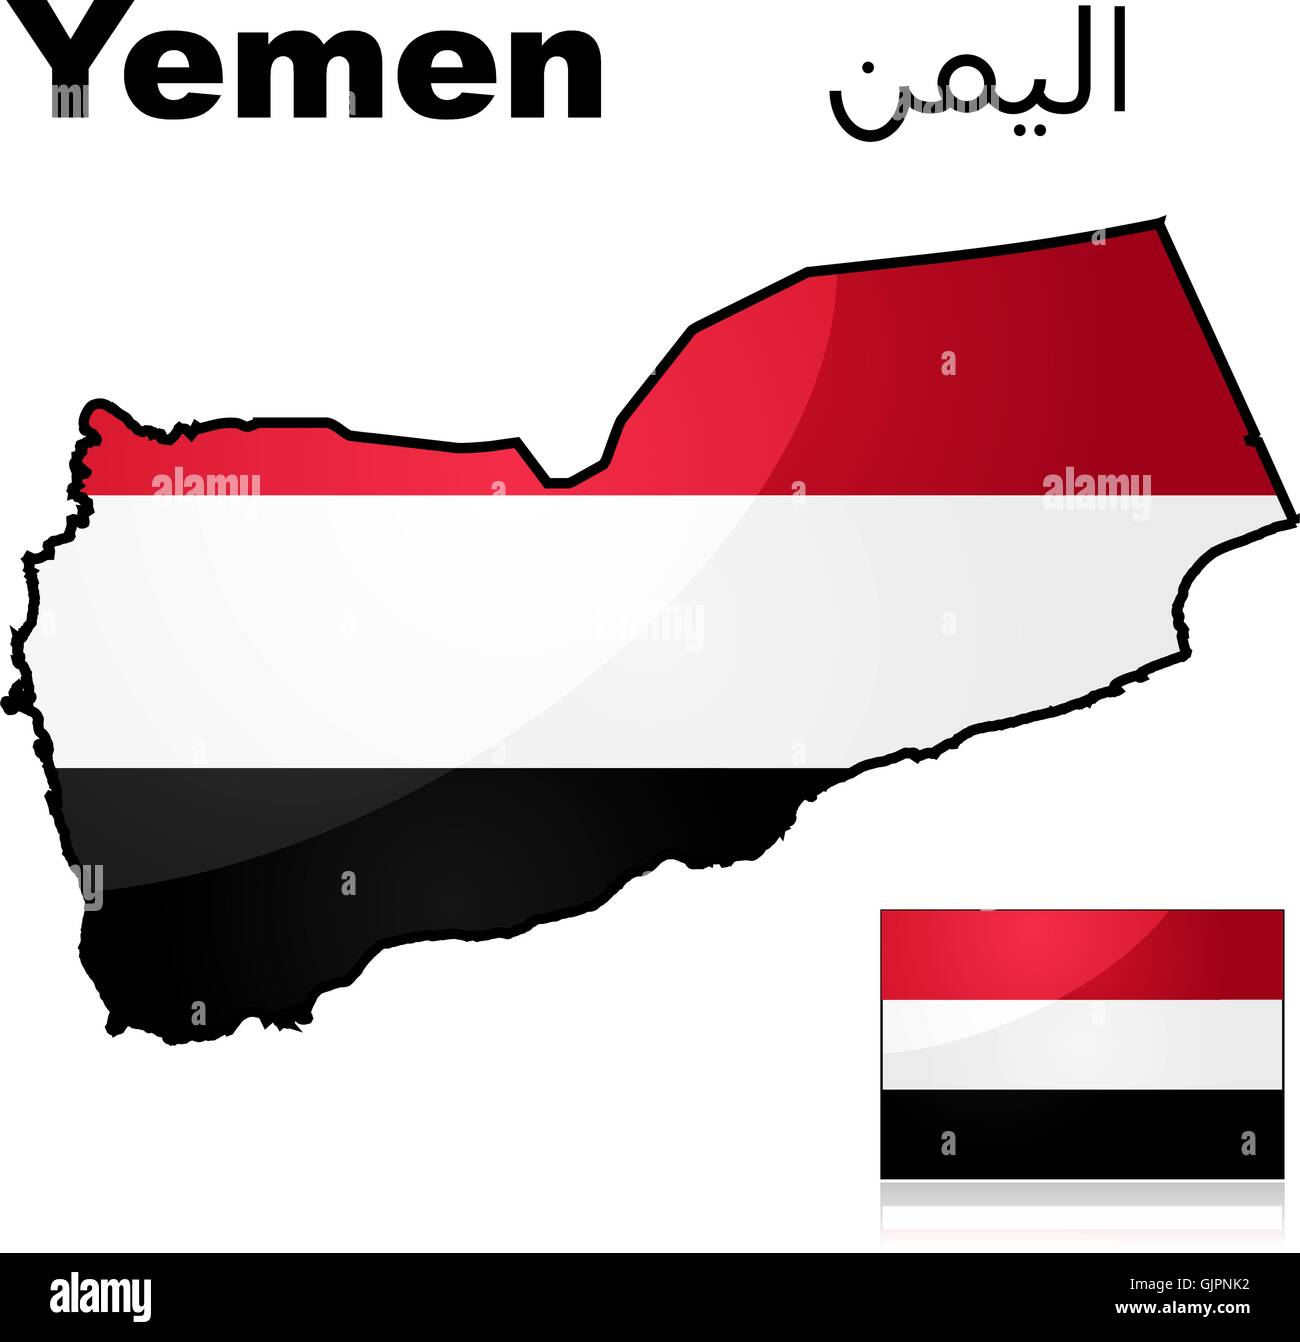 Yemen flag and map - Stock Vector